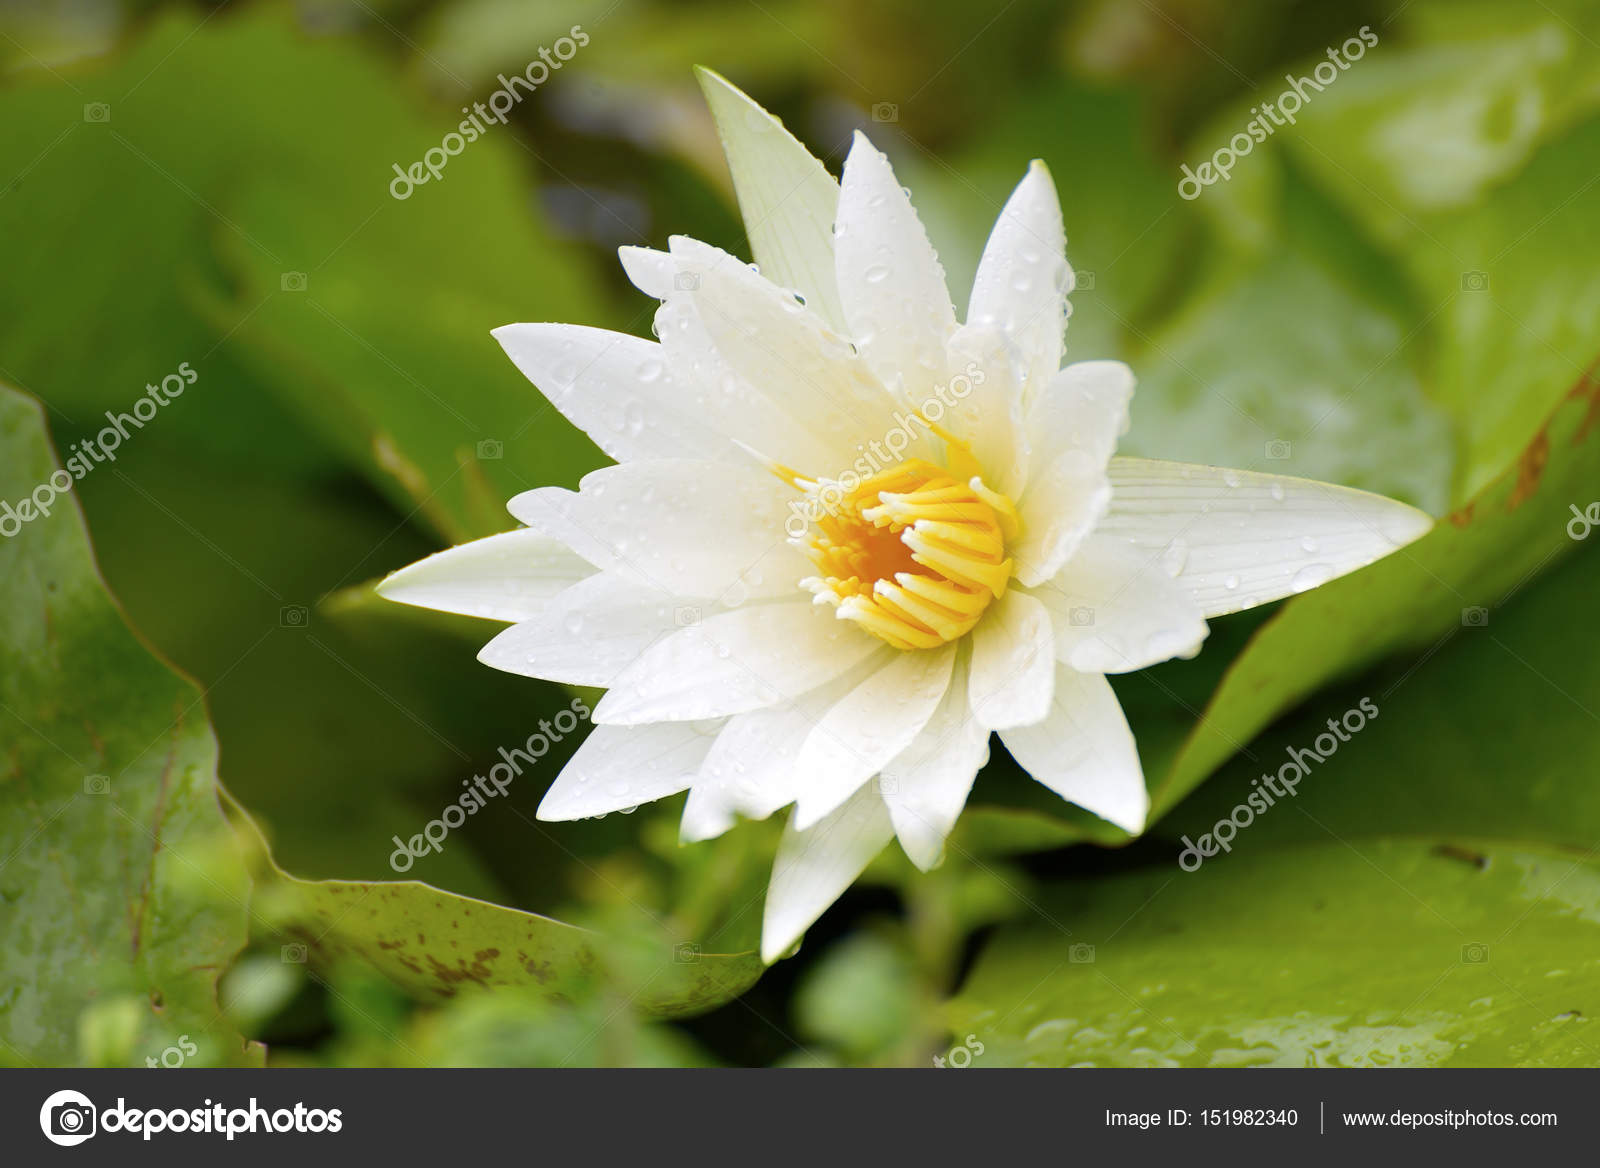 White lotus white flower lotus flower of buddha stock photo lotus flower of buddha stock photo izmirmasajfo